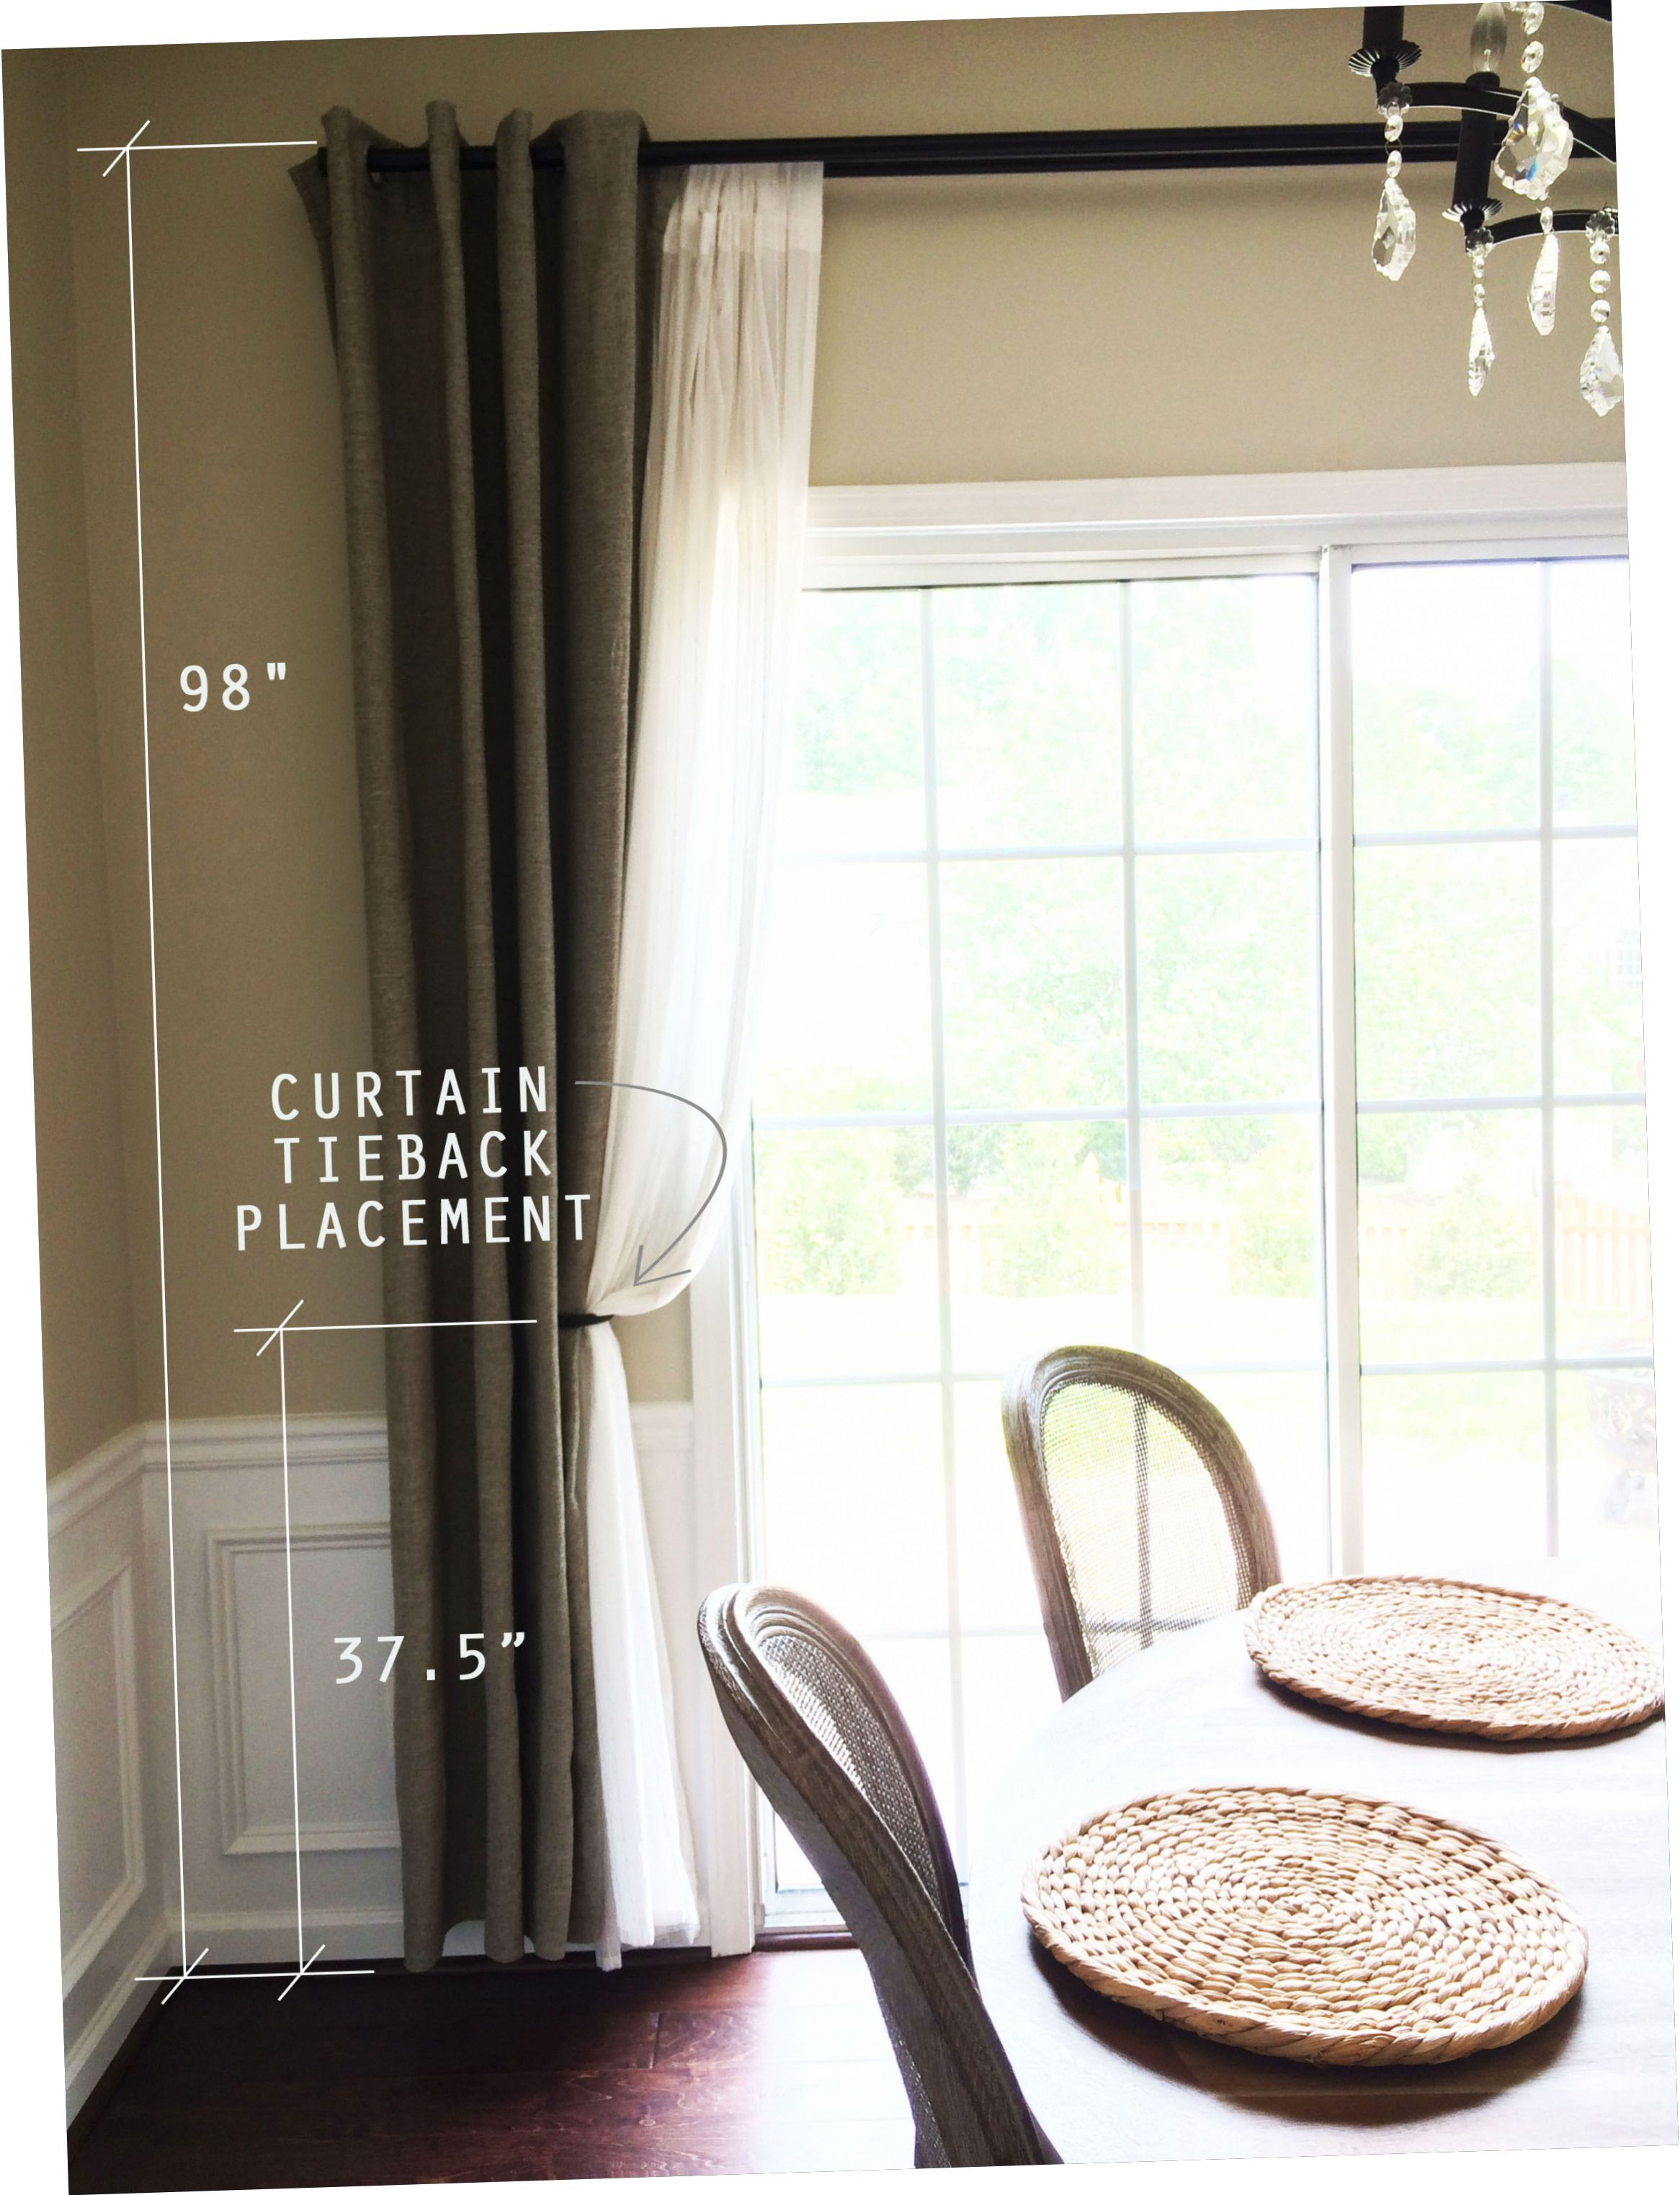 where to mount curtain tie backs image